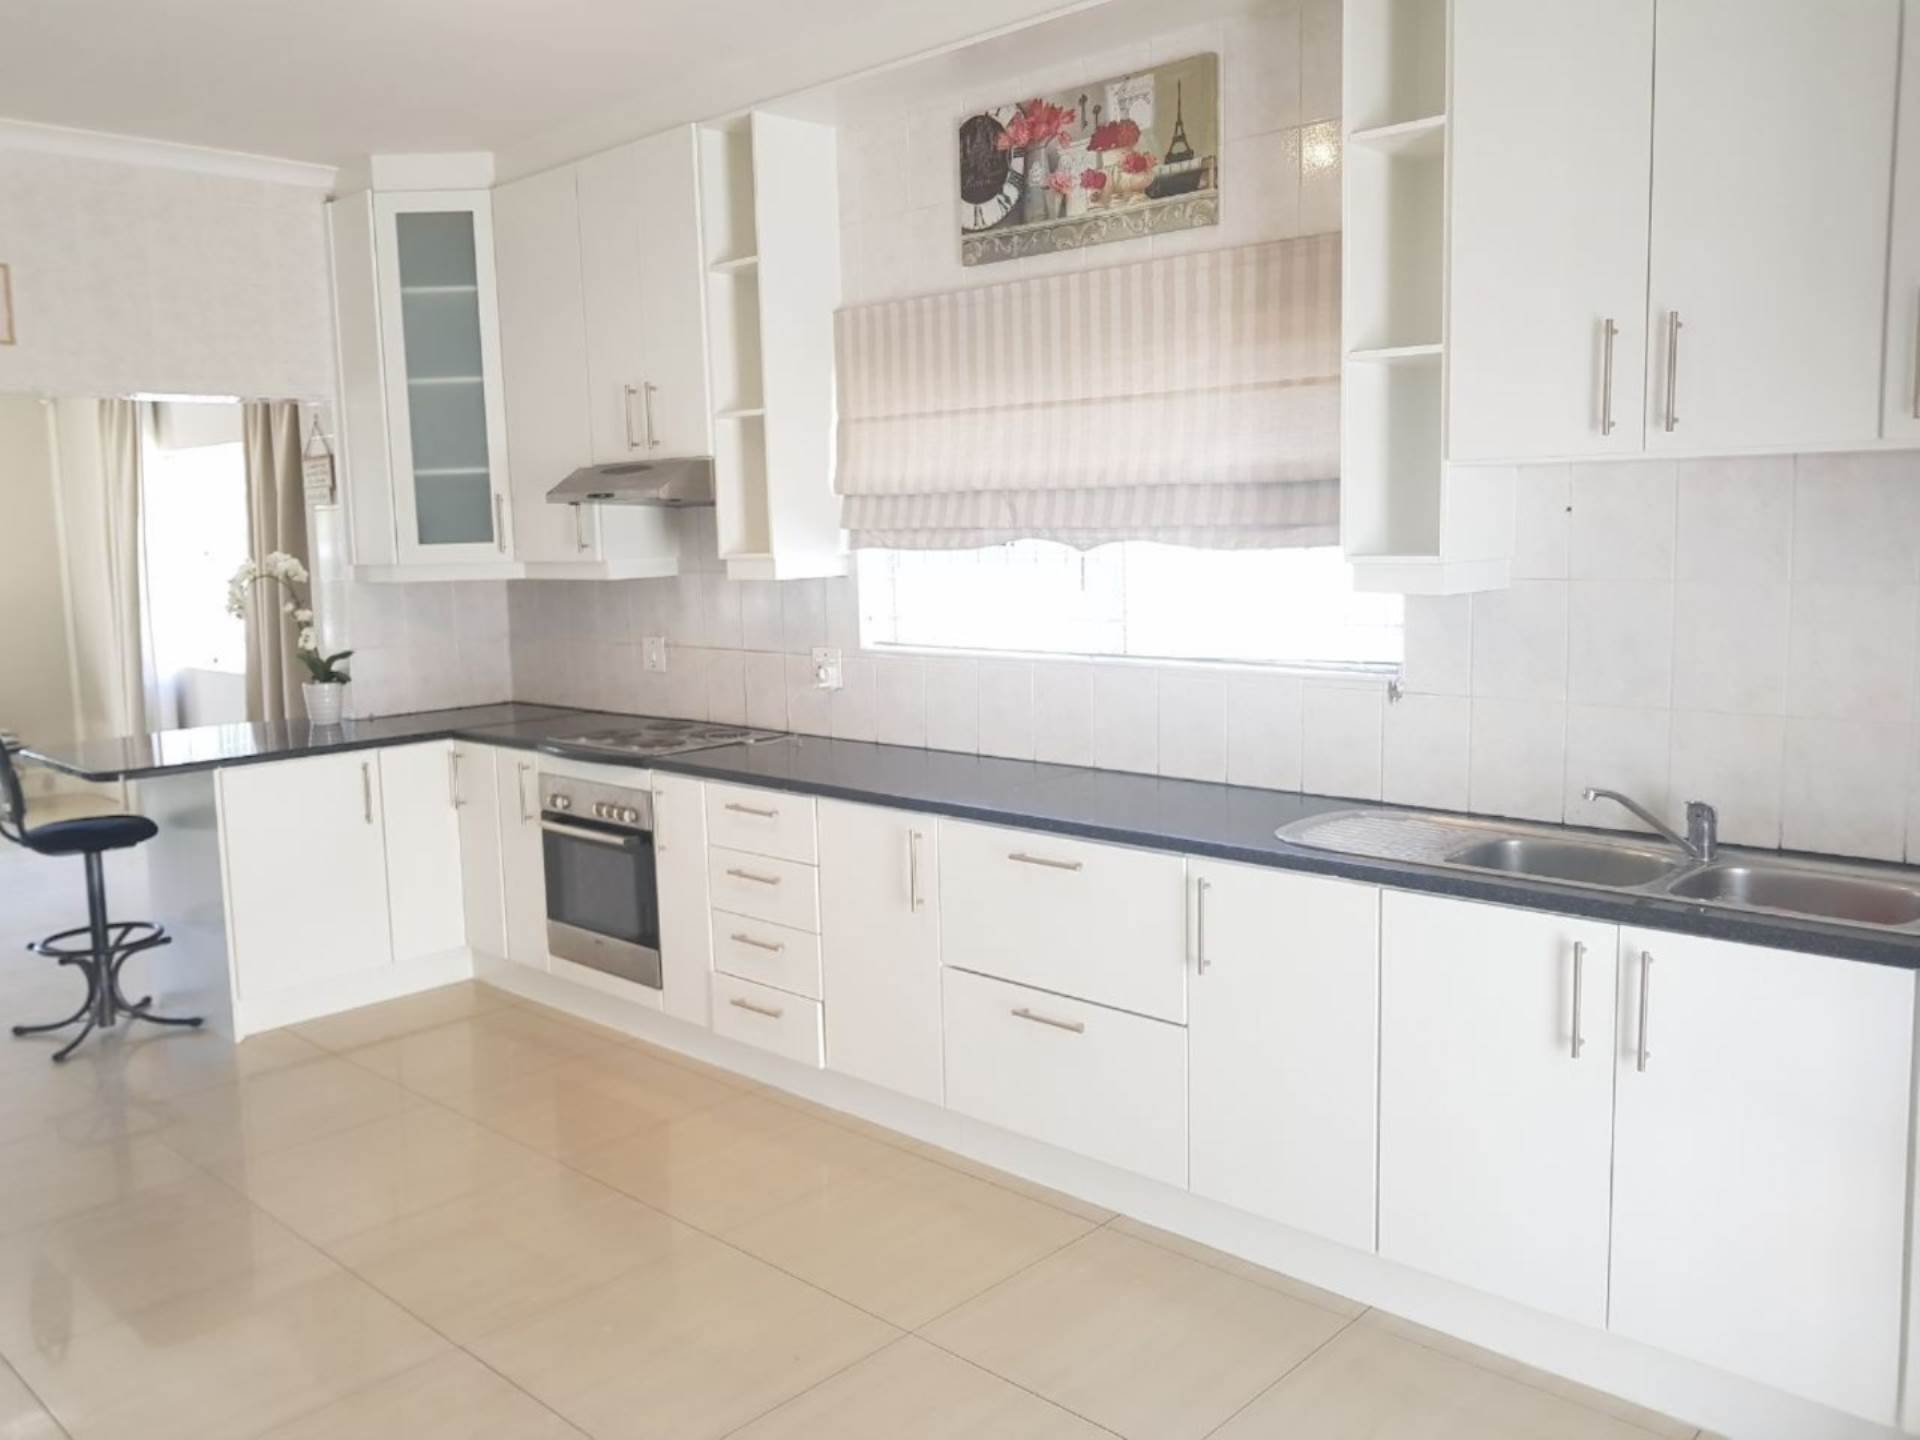 Milnerton Ridge property for sale. Ref No: 13622442. Picture no 3